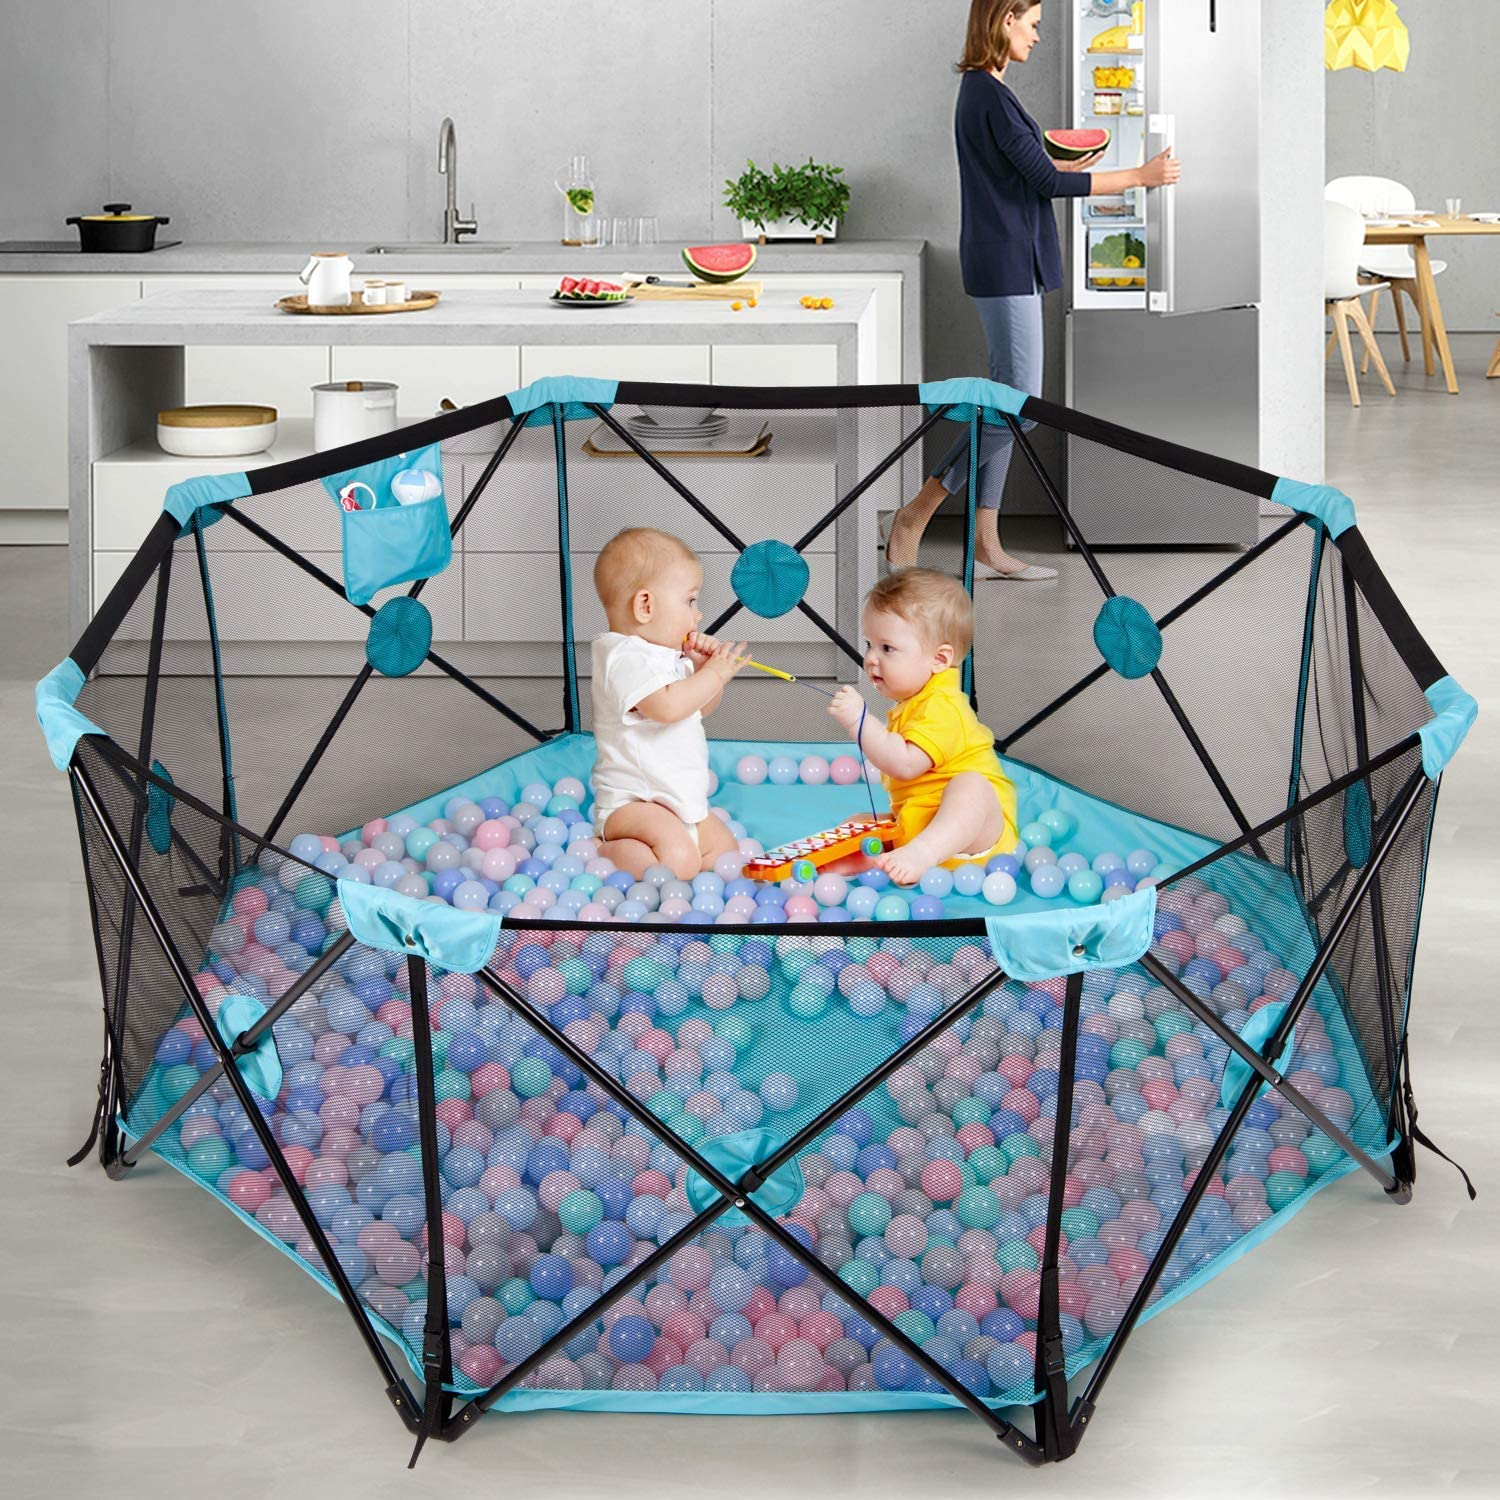 APAN Baby Playpen,8 Panel Foldable and Portable Play Yard for Baby Toddlers,Large Activity Centre with Breathable Mesh and Storage Bag,Indoor/&Outdoor Safe Playard Blue